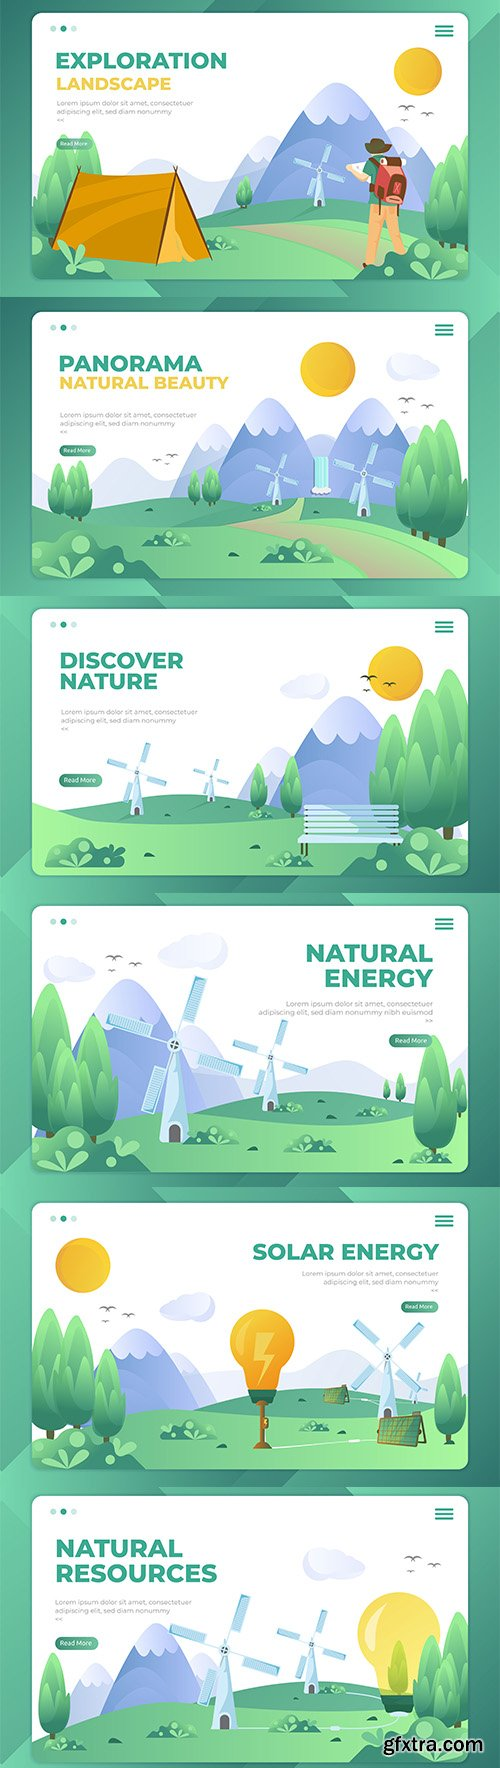 Natural Resources Landing Page Templates